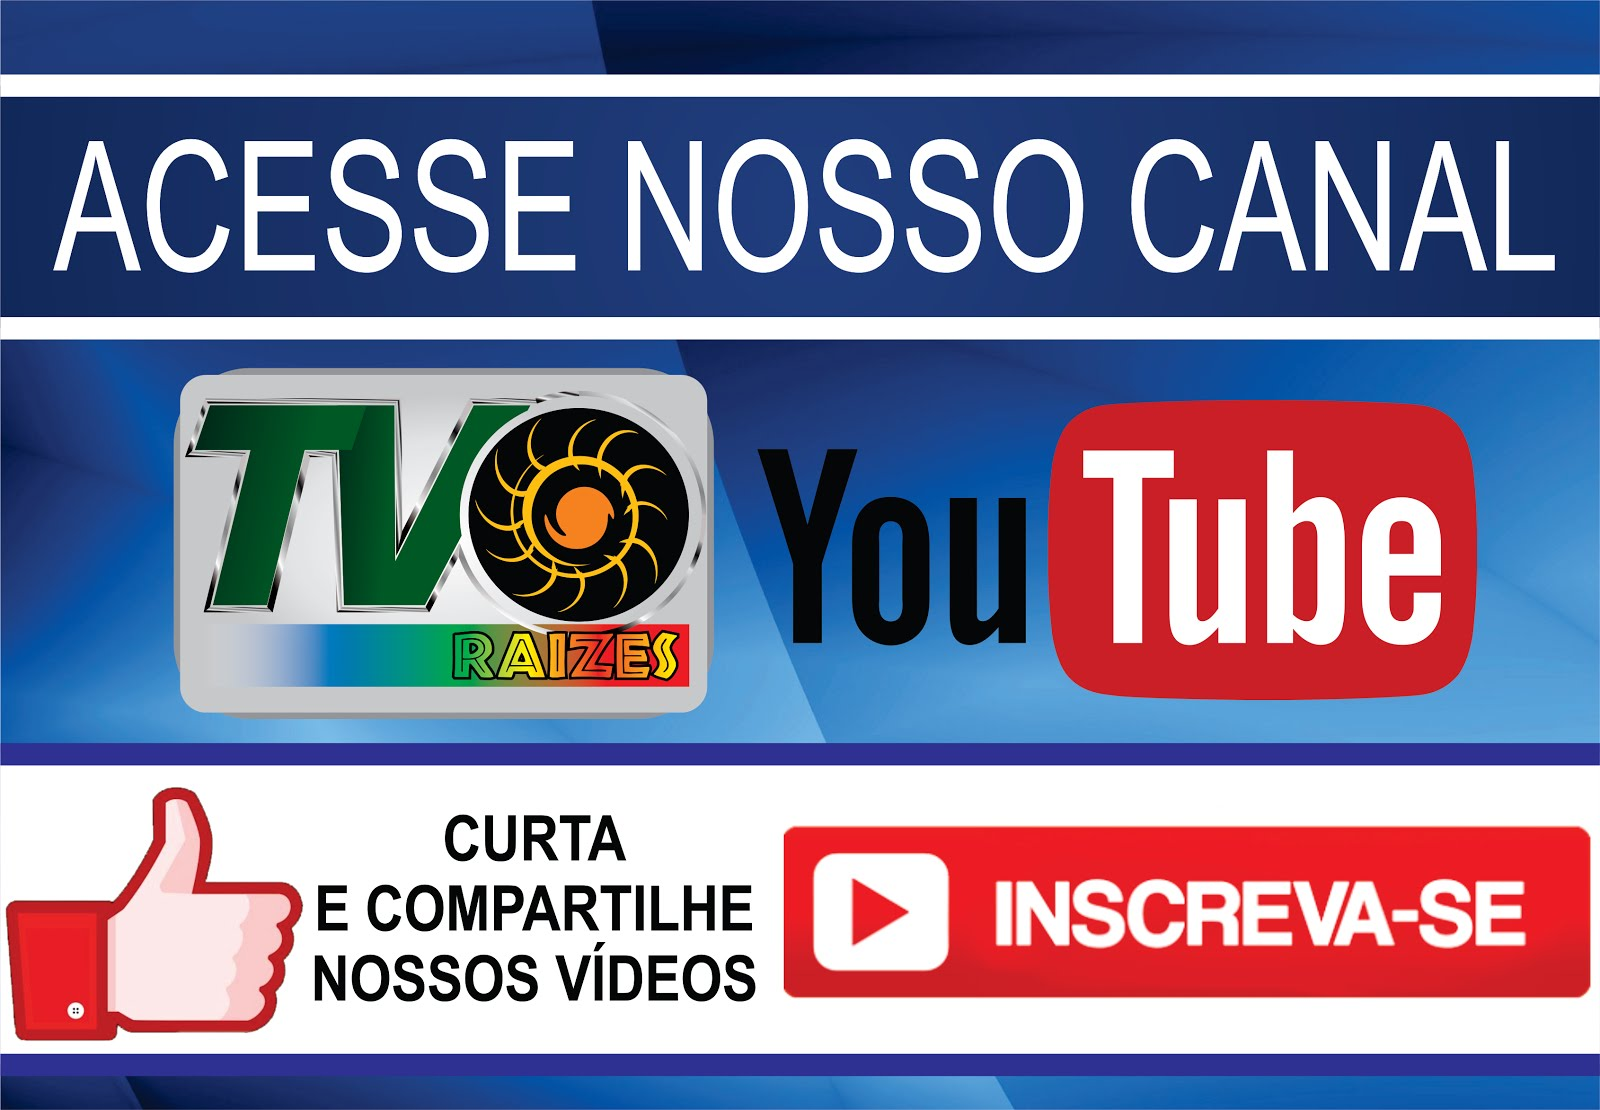 CANAL DA TV RAÍZES NO YOUTUBE